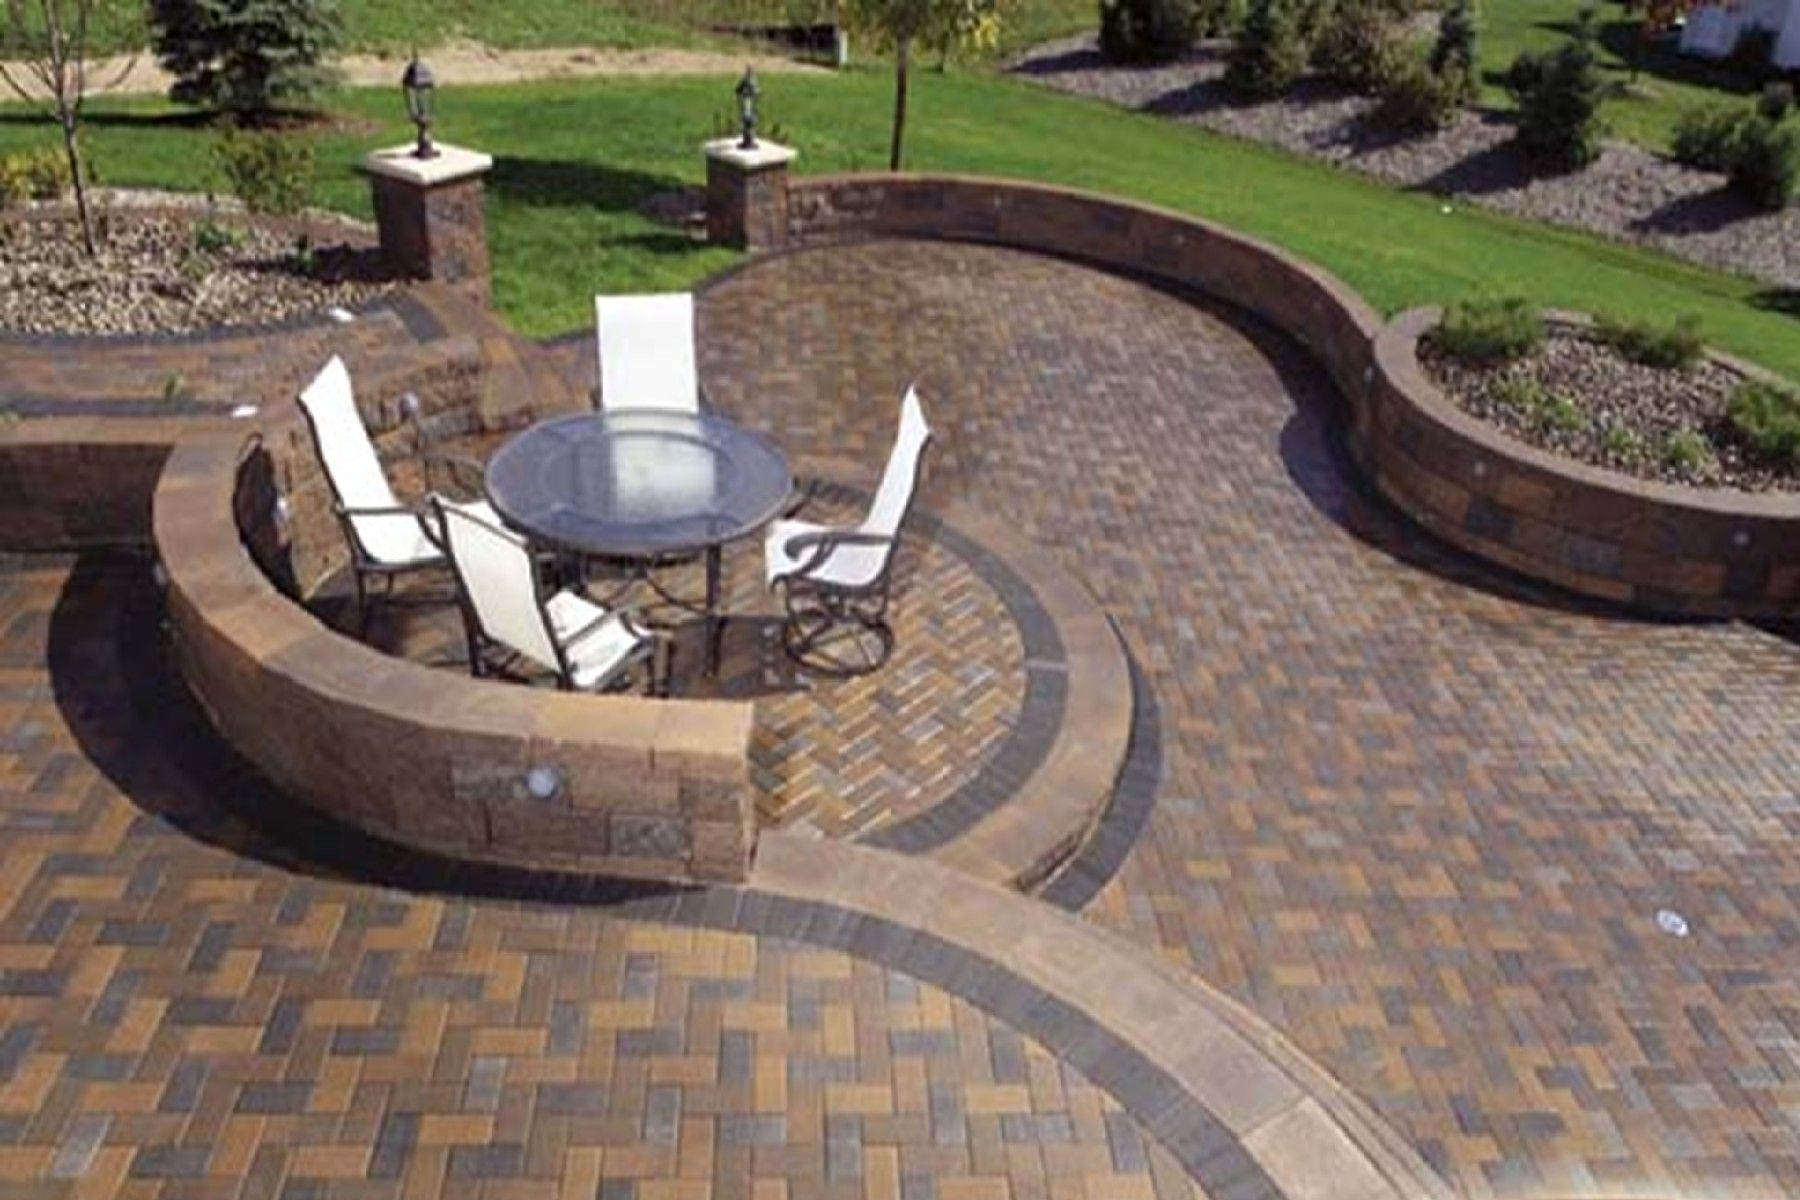 1000 images about paver patio on pinterest paver patterns paver patio designs and patio patio - Paver Patio Design Ideas